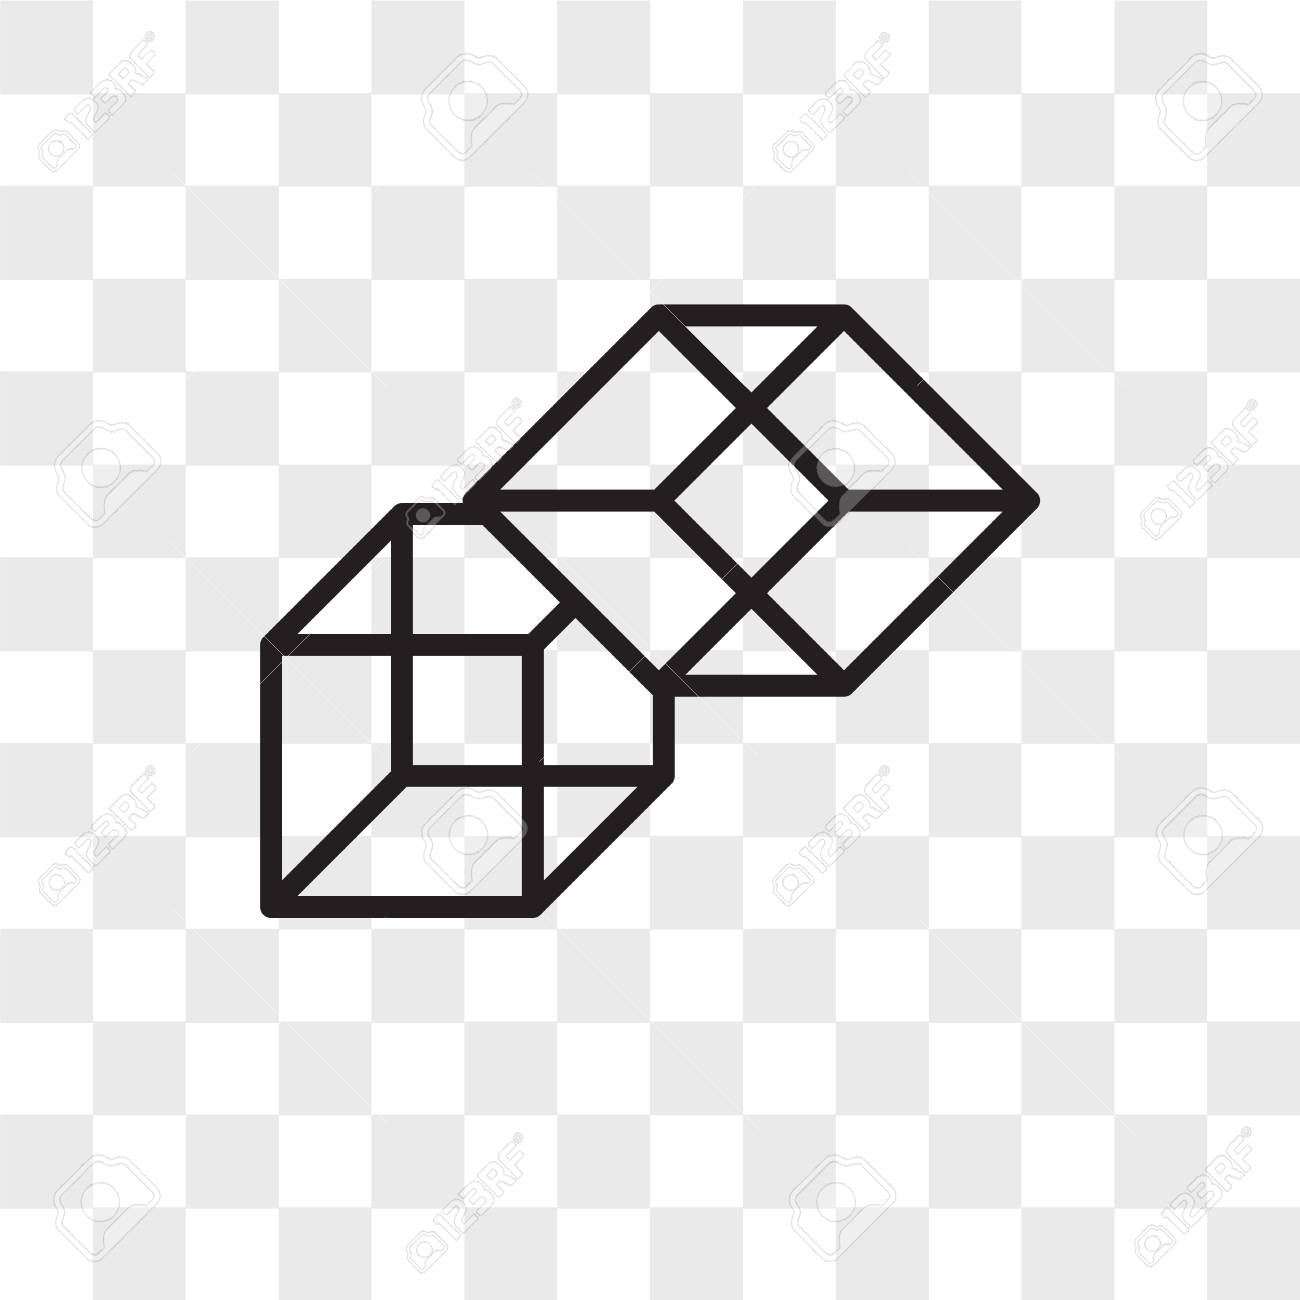 3d cube vector icon isolated on transparent background, 3d cube